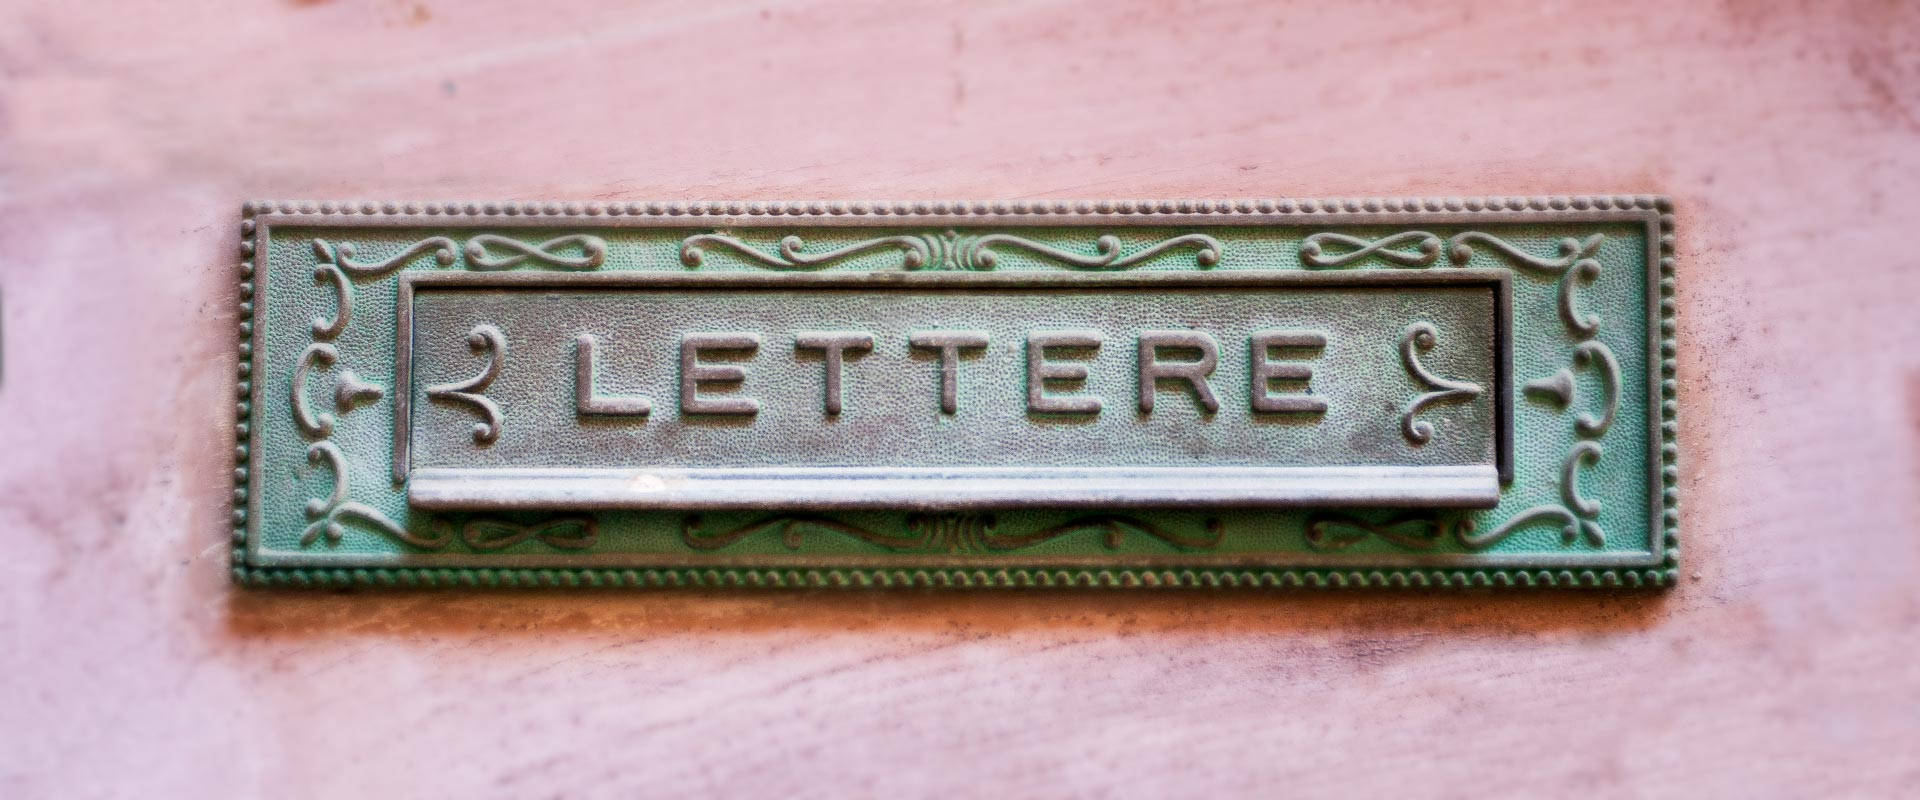 Old rustic letter box